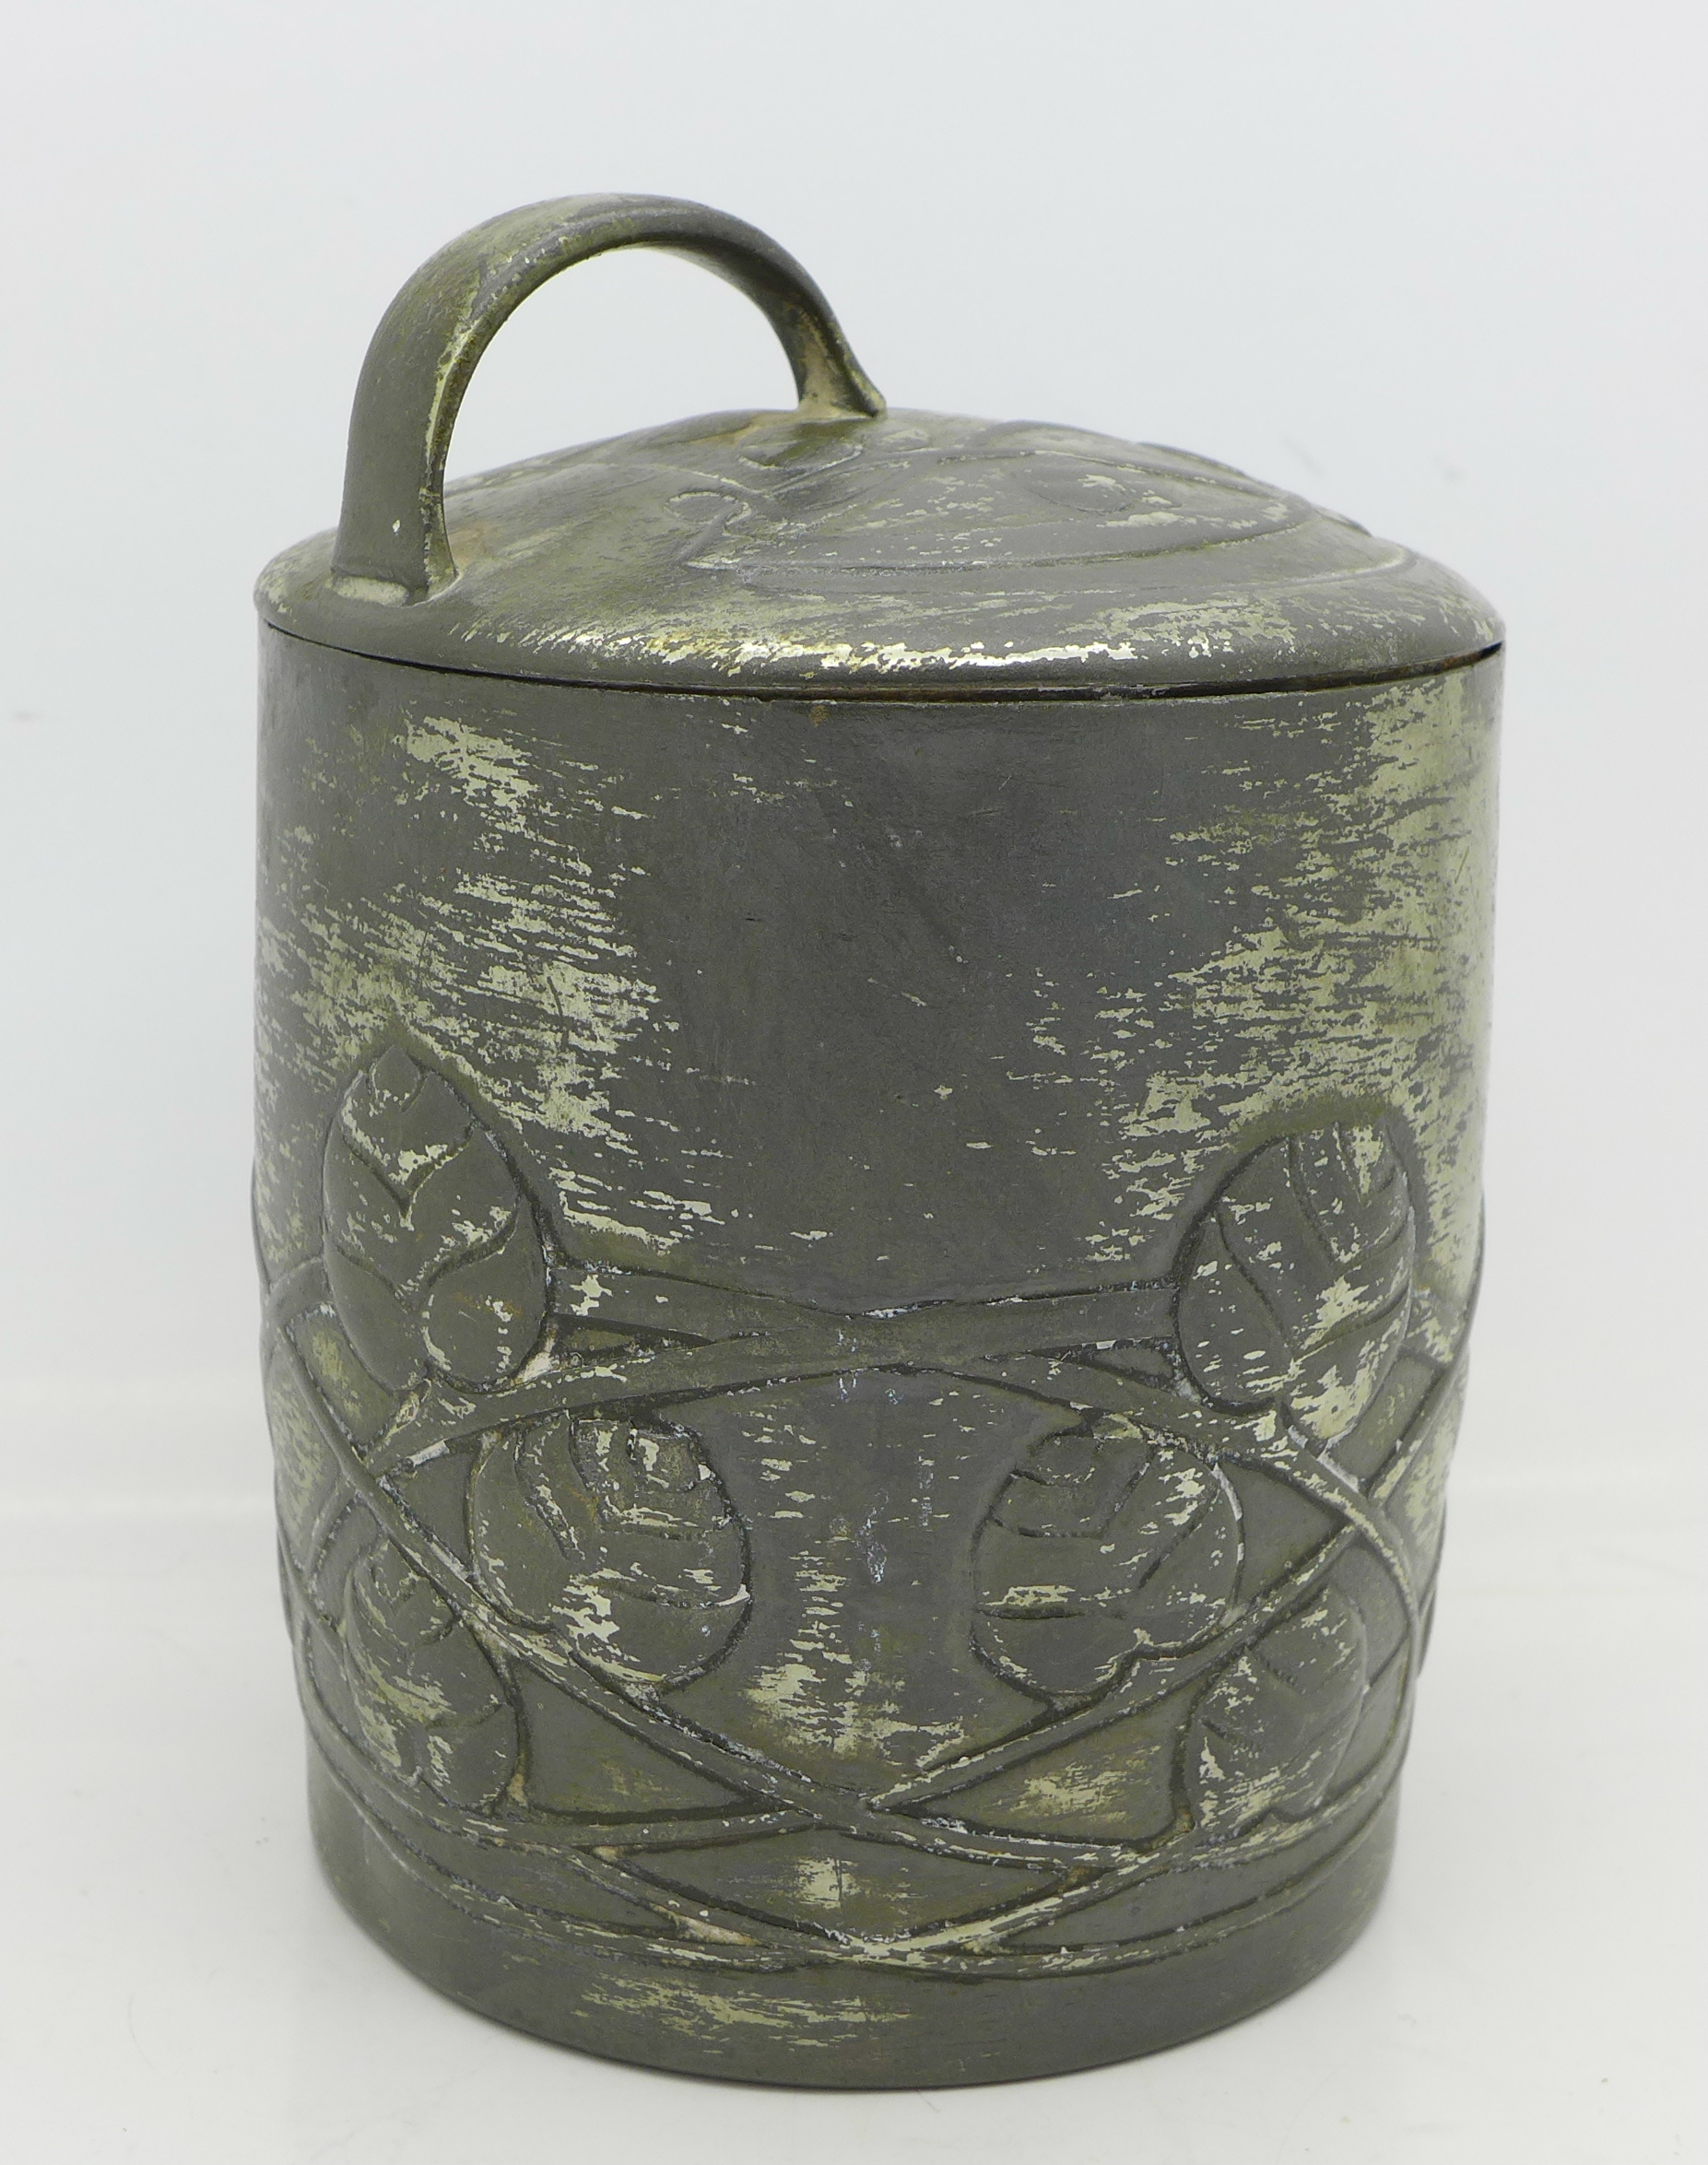 Lot 634 - A Tudric pewter lidded jar, designed by Archibald Knox, 0700, height with handle 13.